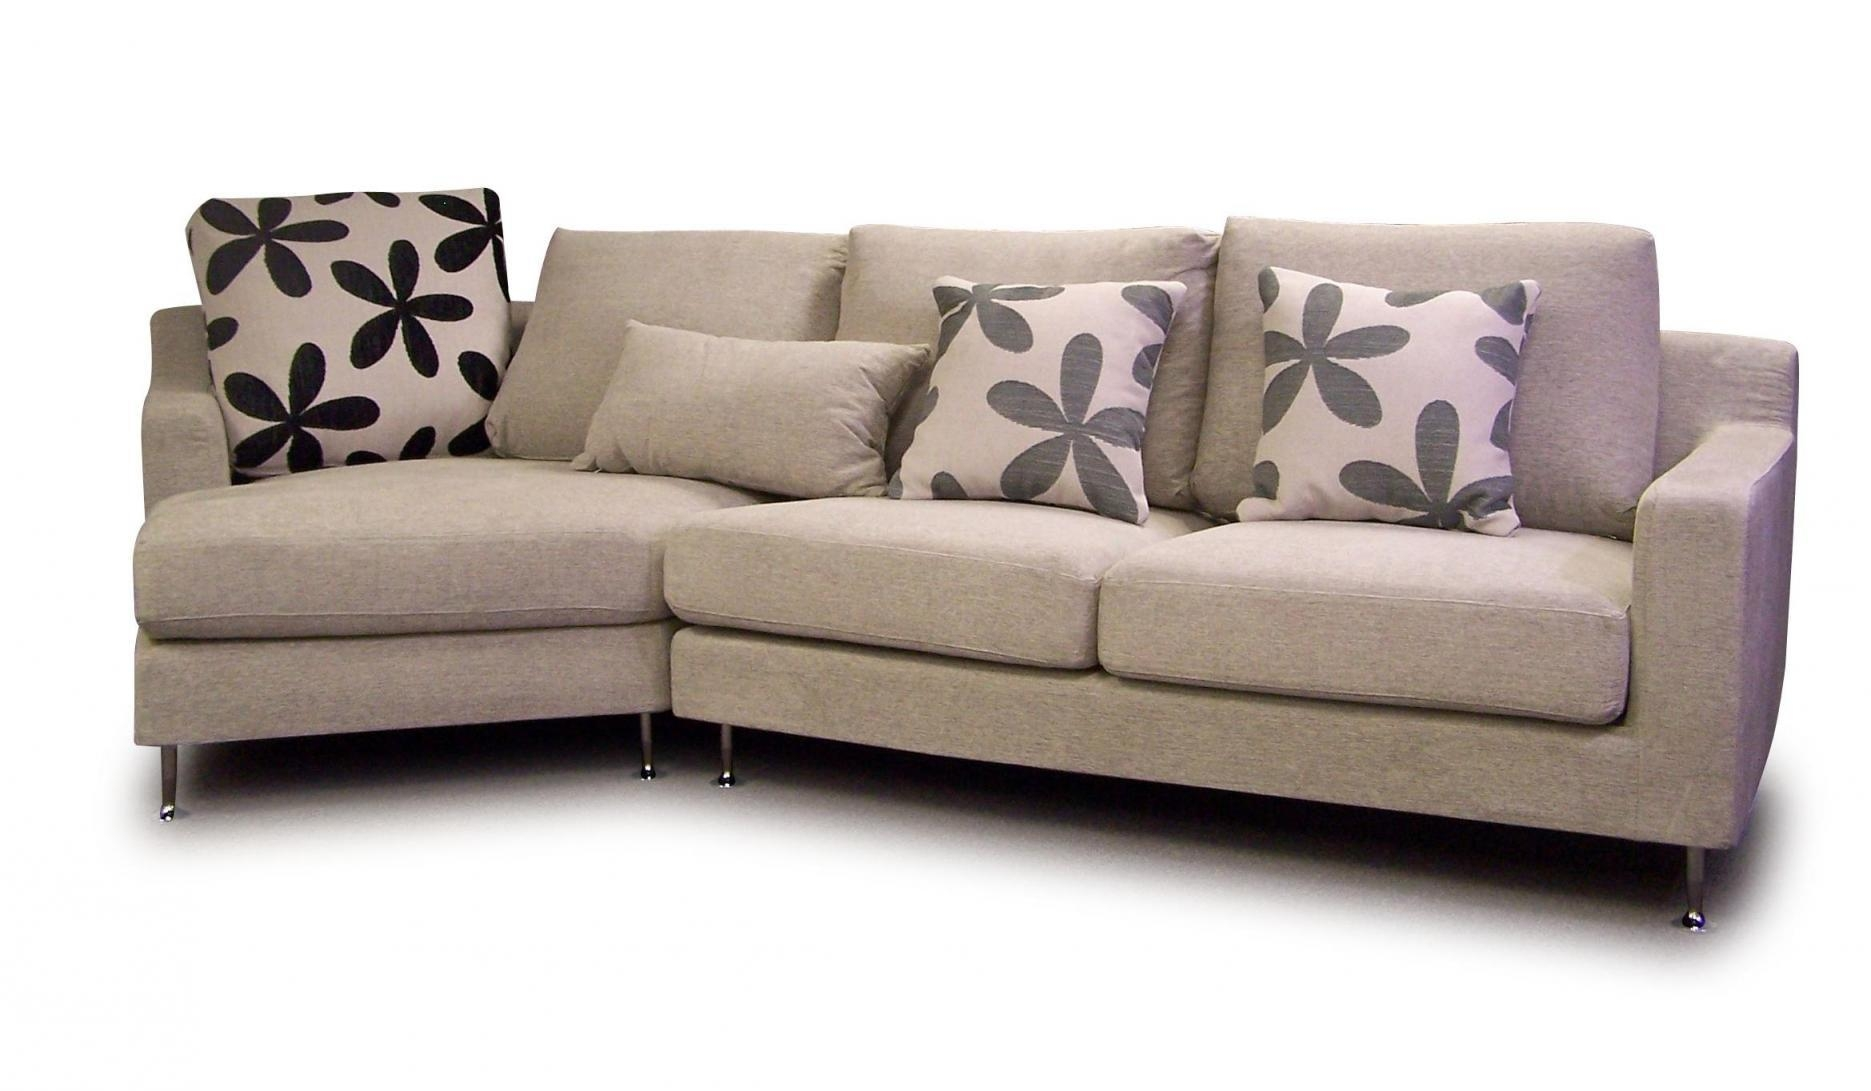 Sofa : Awesome Sofas For Cheap Sale Excellent Home Design Cool In Regarding Cool Cheap Sofas (View 9 of 20)